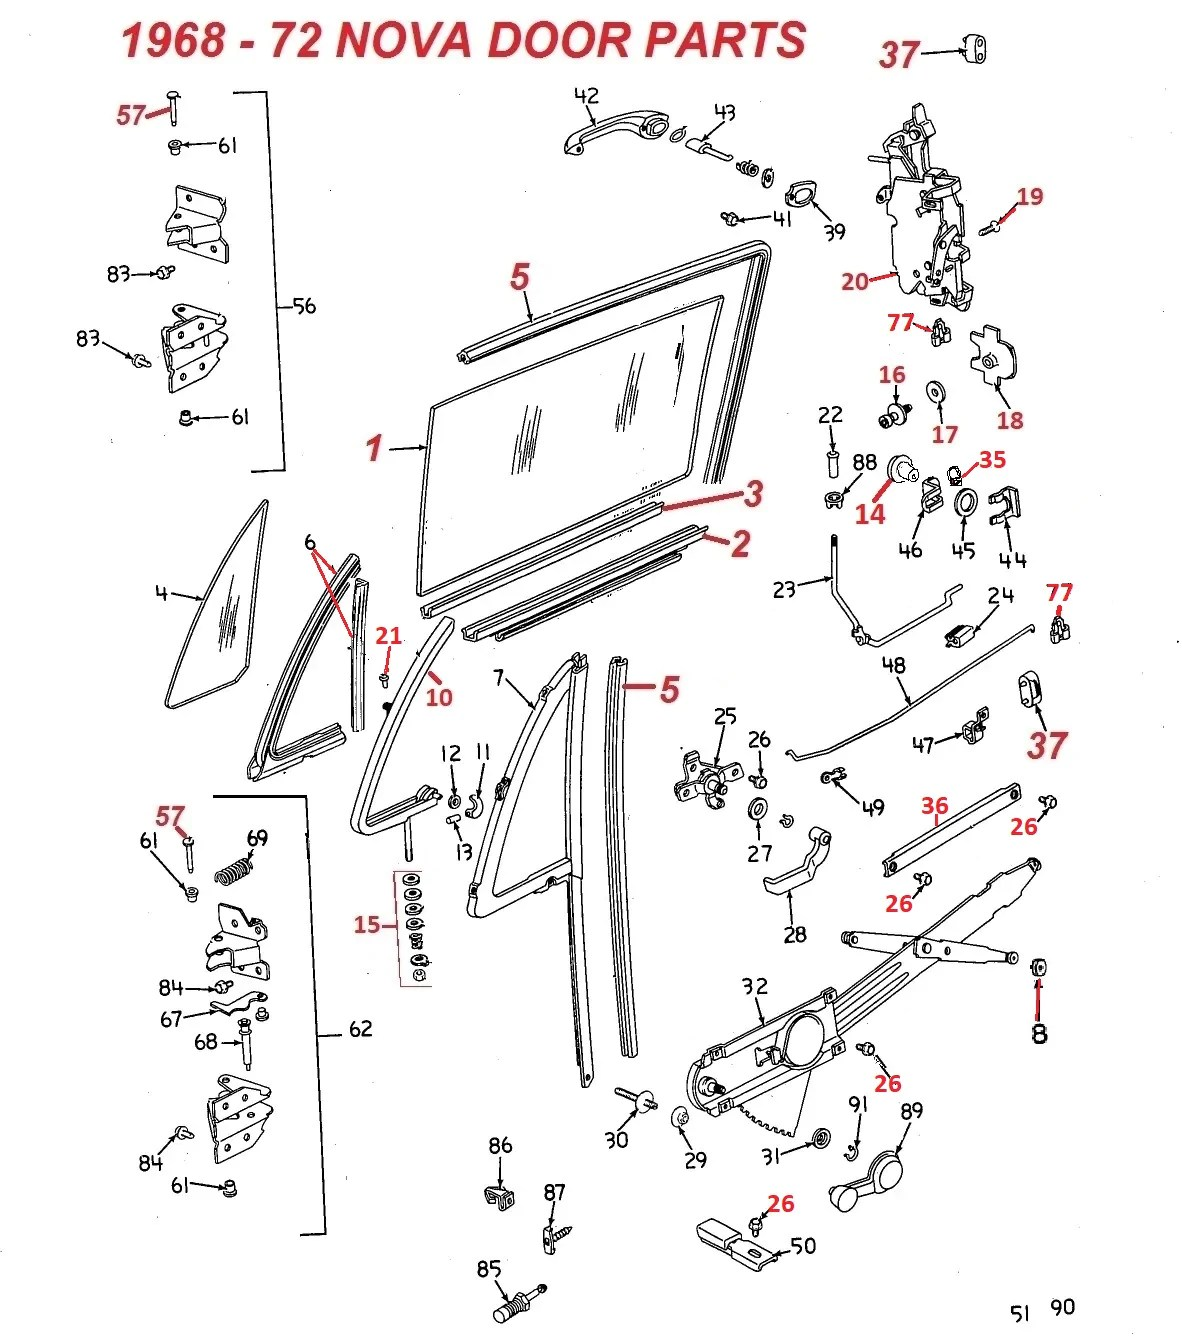 1968 72 nova 71 72 ventura door parts chicago muscle car parts inc car frame schematic car door schematic [ 1182 x 1341 Pixel ]